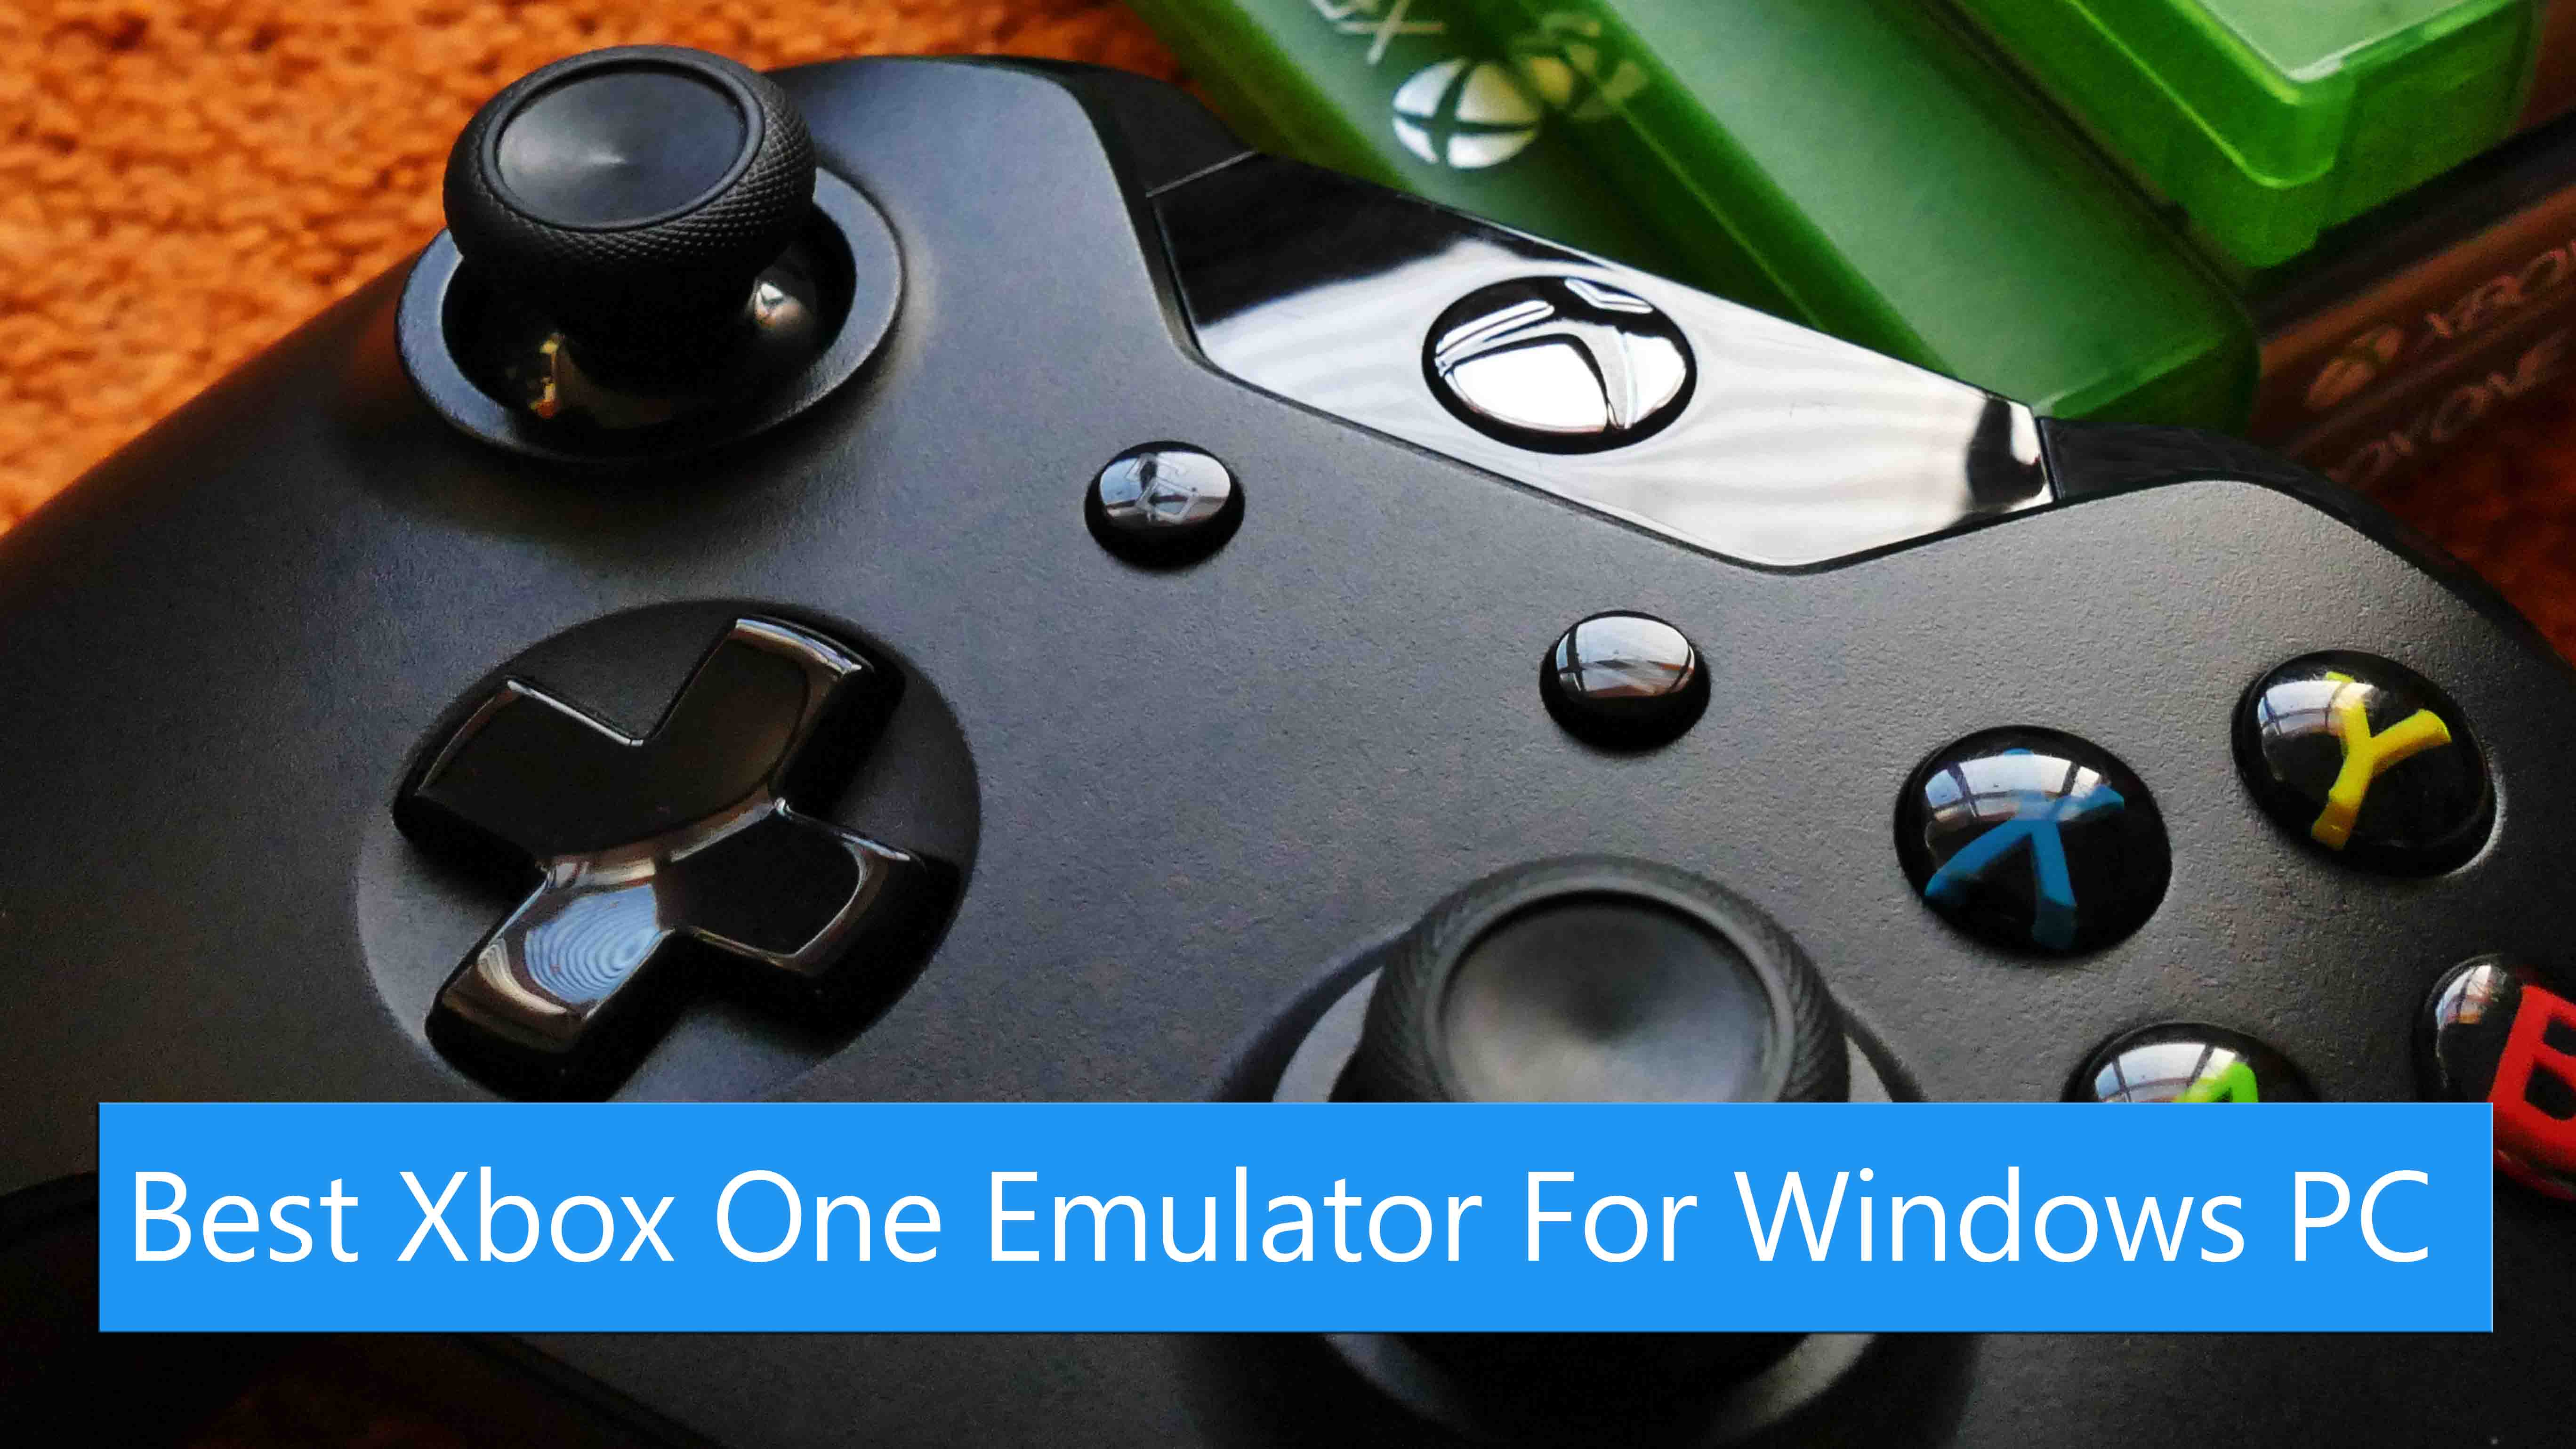 Best Xbox One Emulator For Windows PC